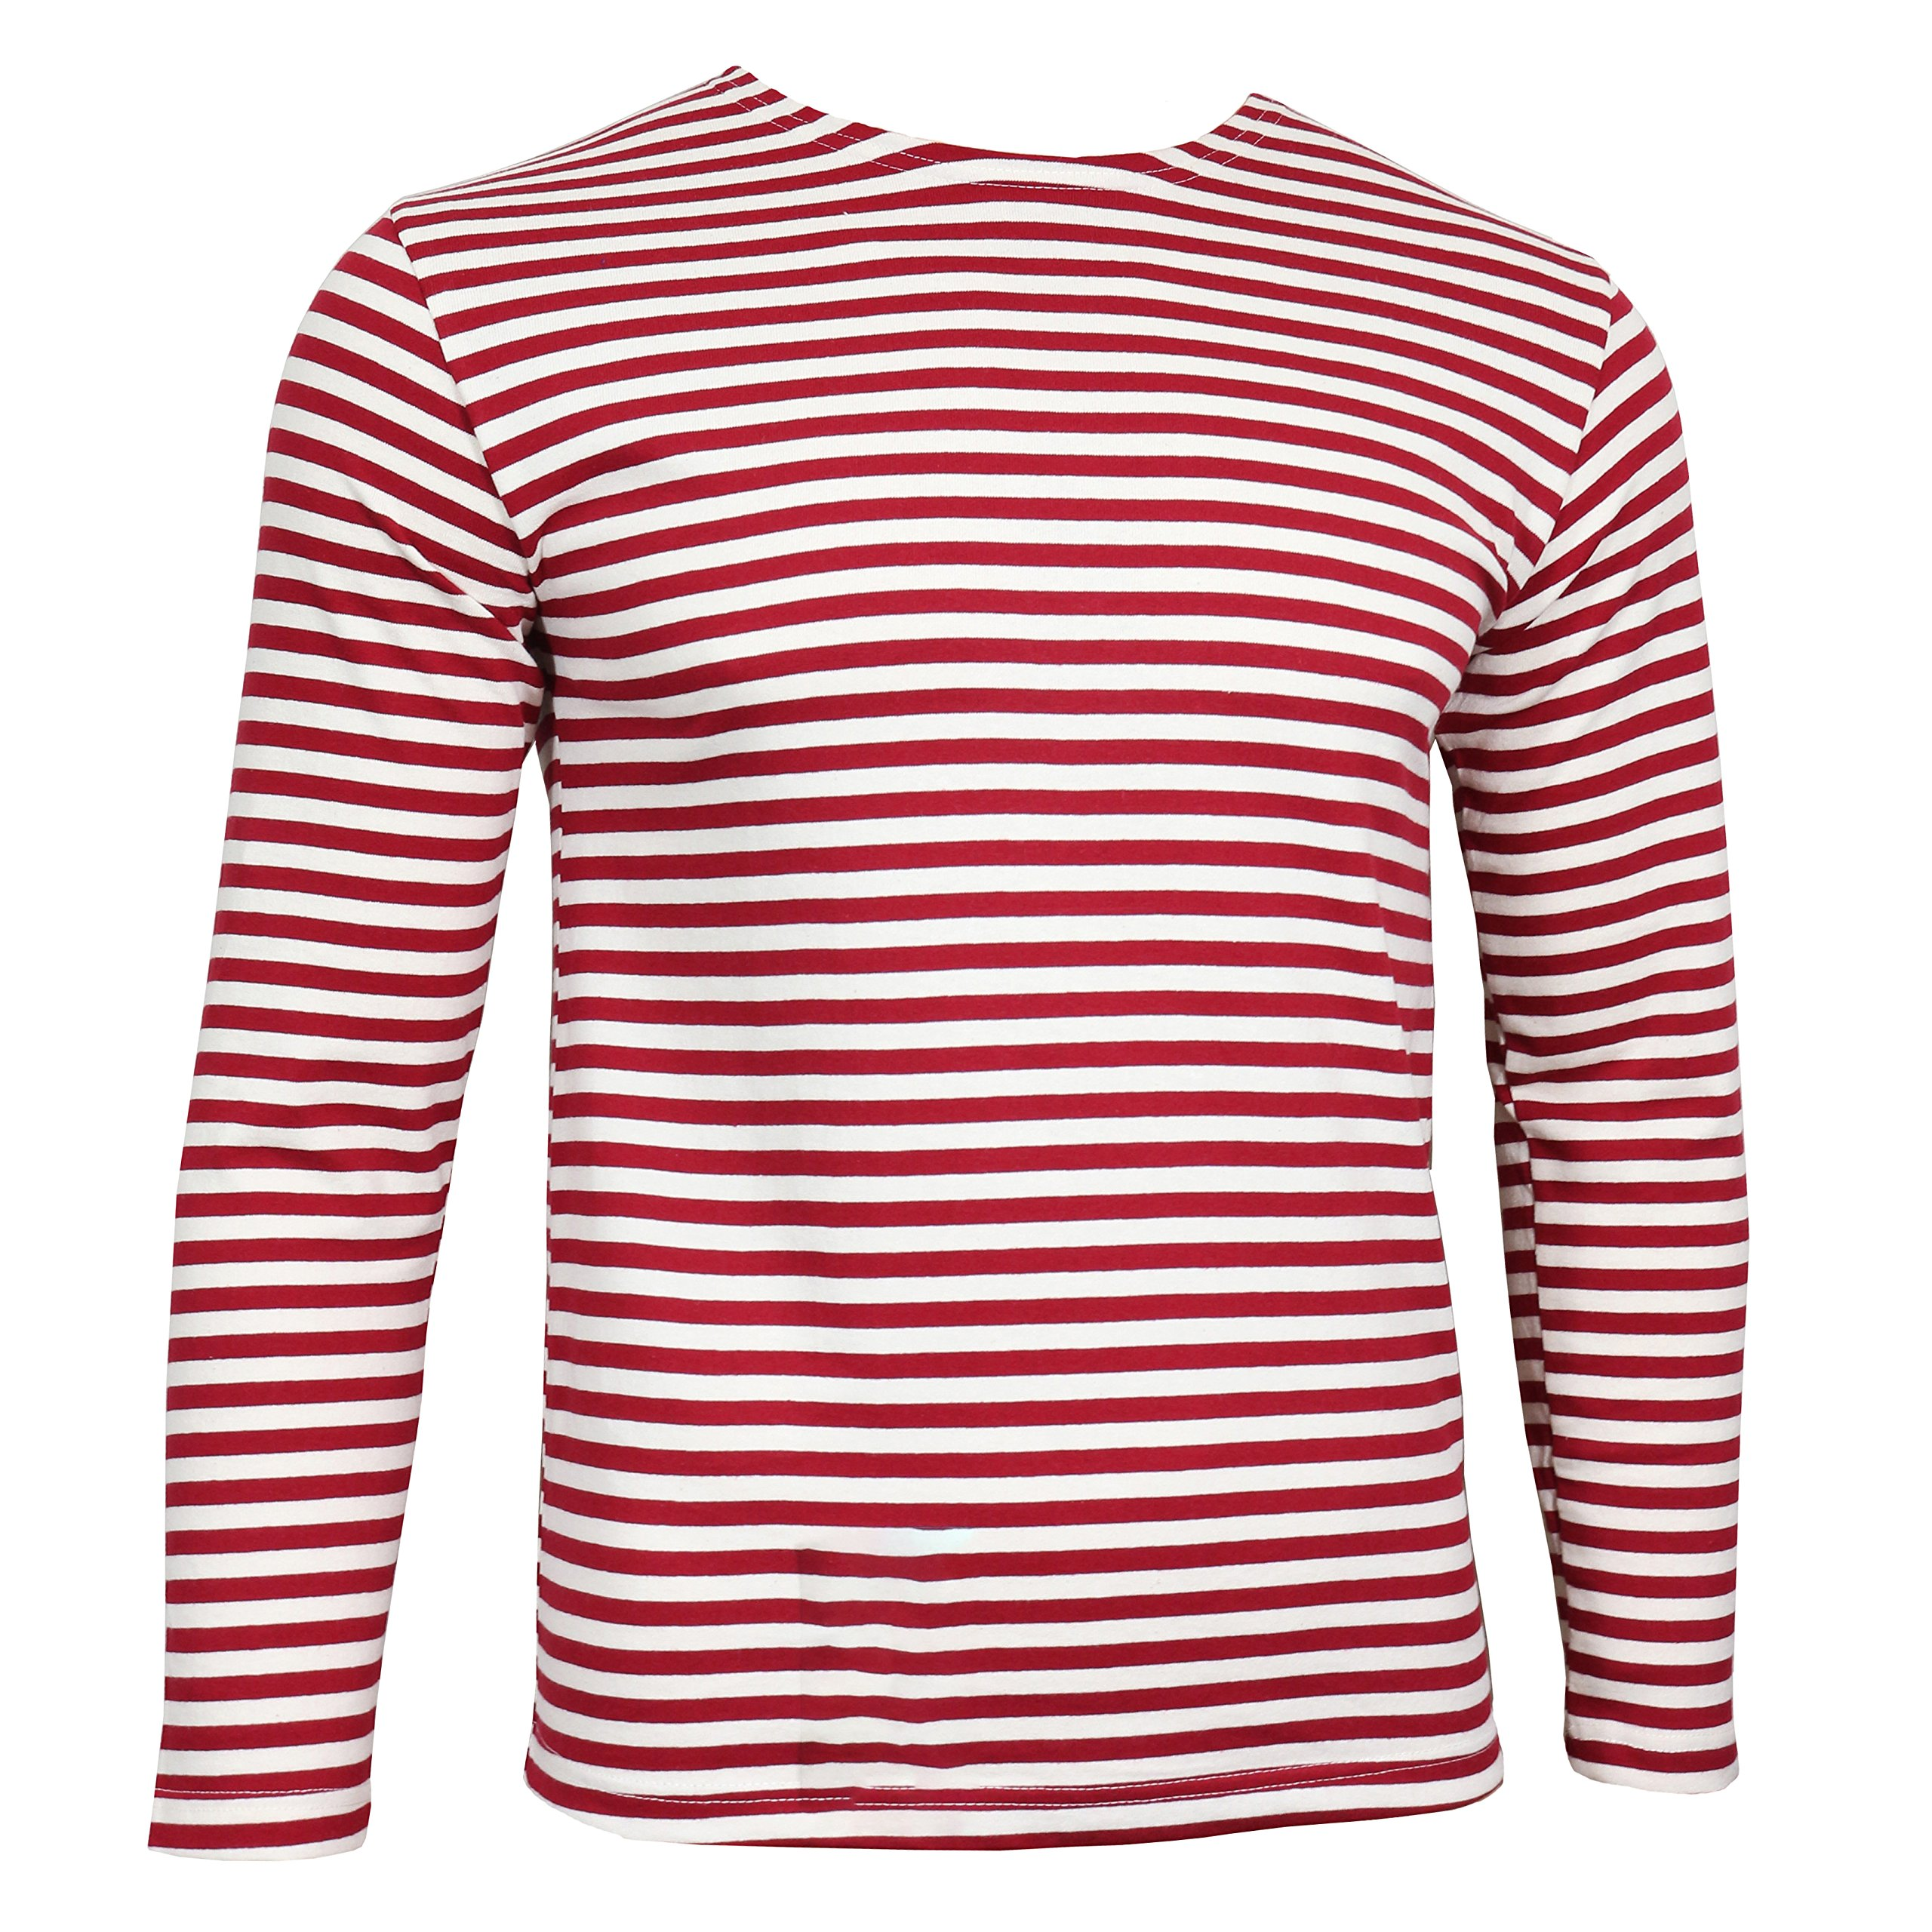 Genuine Russian OMON Special Forces TELNYASHKA - Red Striped MVD Long Sleeved T-Shirt Top (44'' Chest (XL))